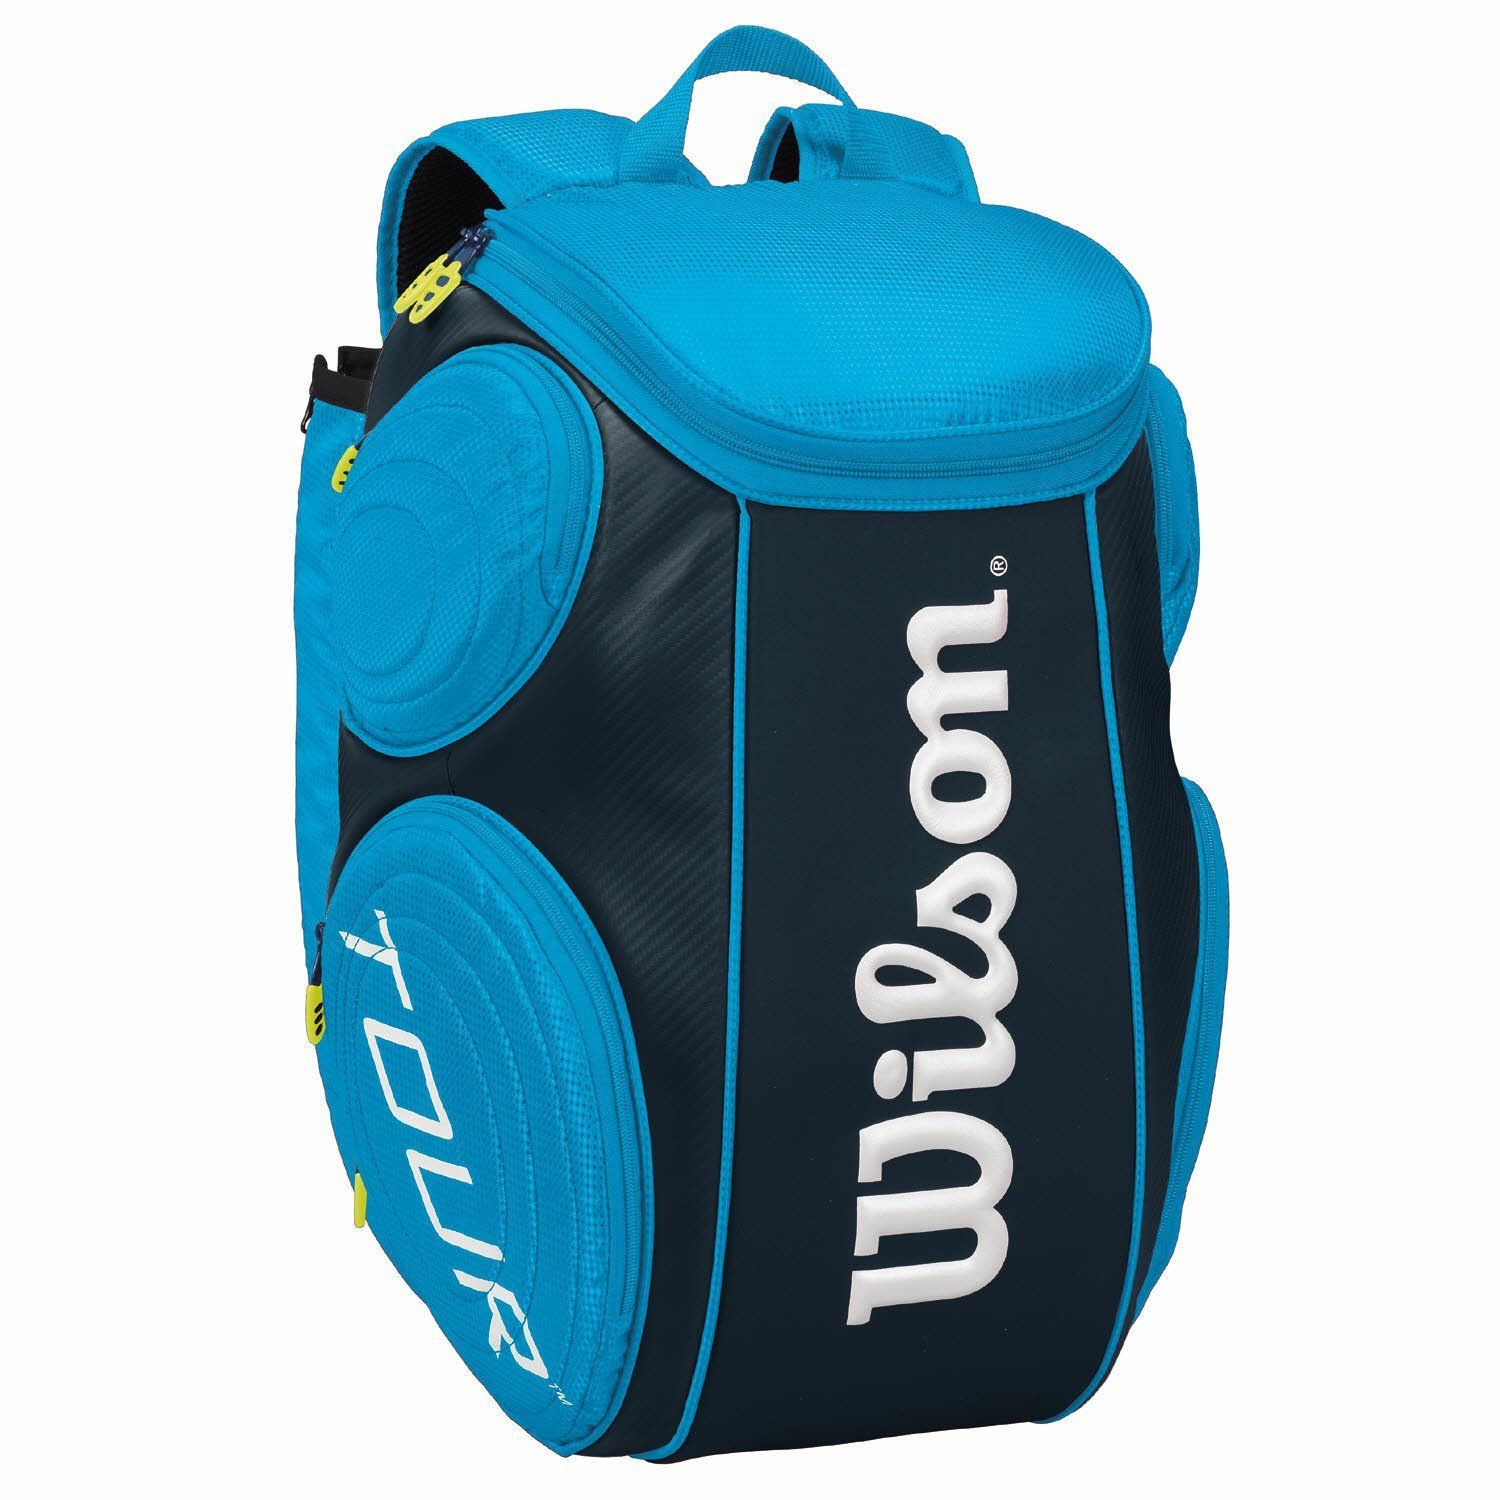 Wilson Tour Large Backpack Trust Me This Is Great Click The Image Backpacks For Hiking Backpacking Bag Tennis Backpack Tennis Bag